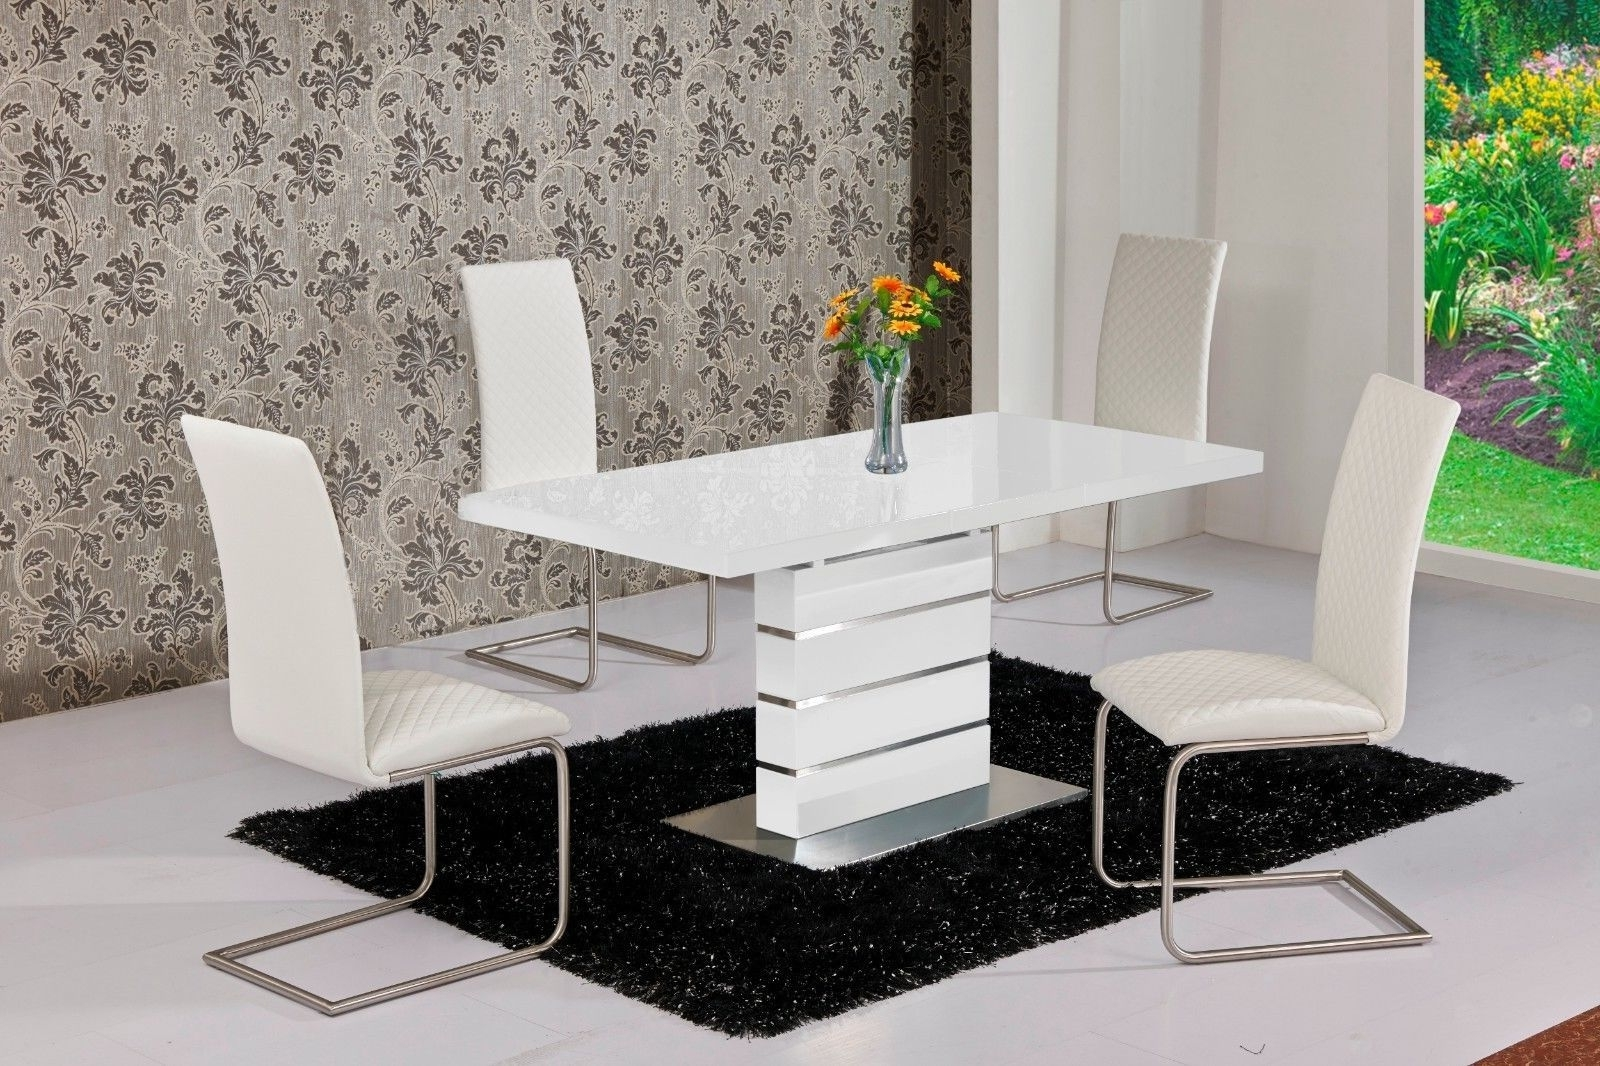 Widely Used Mace High Gloss Extending 120 160 Dining Table & Chair Set – White Inside Extendable Dining Room Tables And Chairs (View 25 of 25)